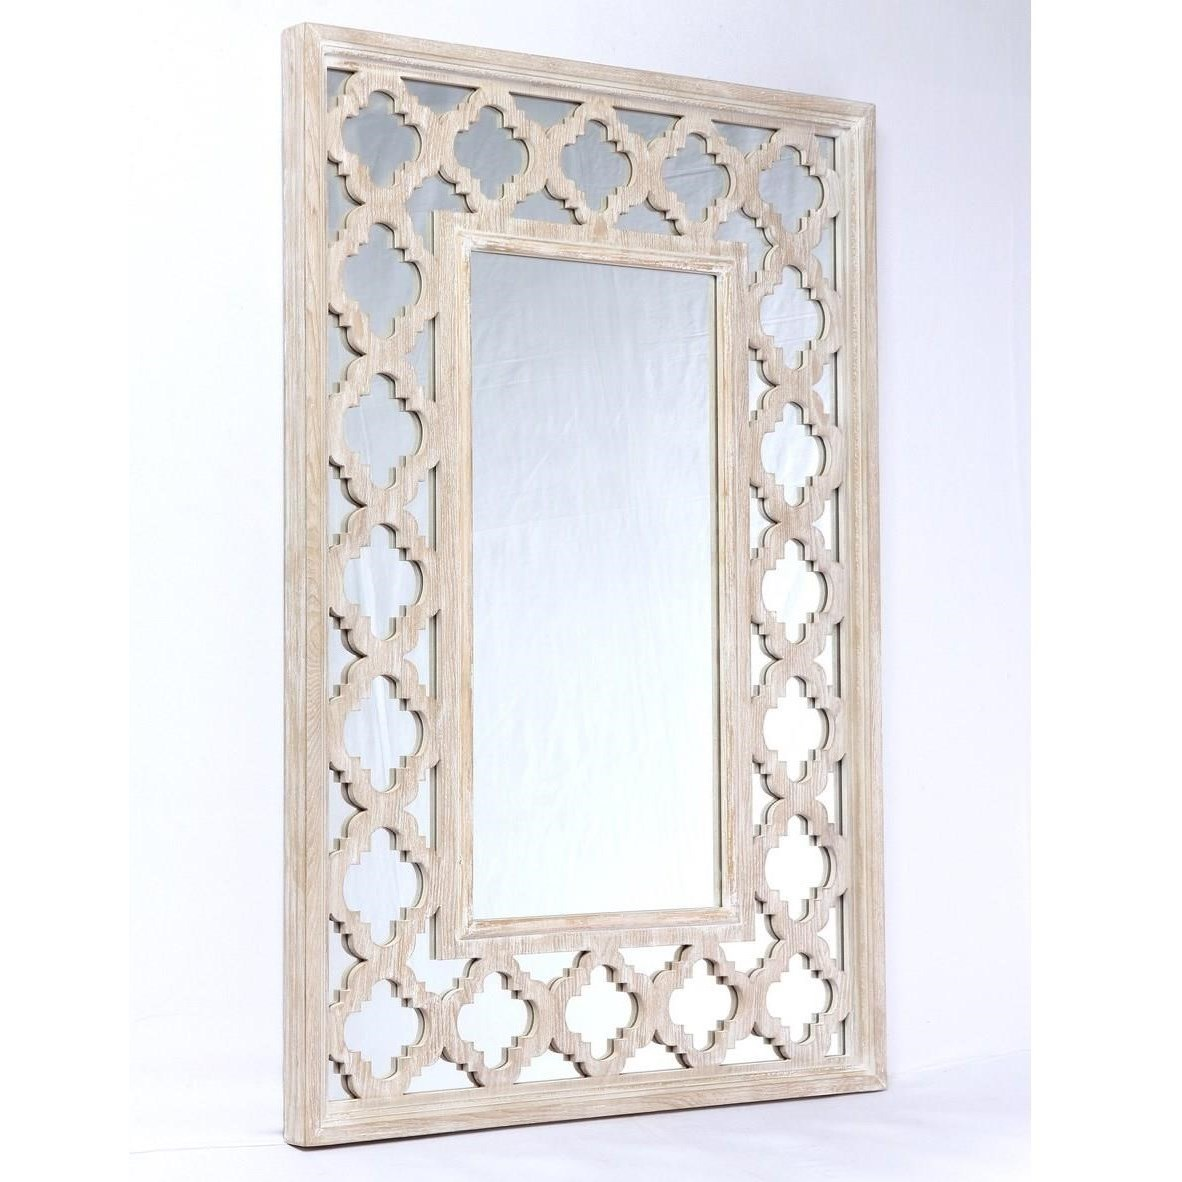 Canterwood Accent Mirror by Emerald at Northeast Factory Direct